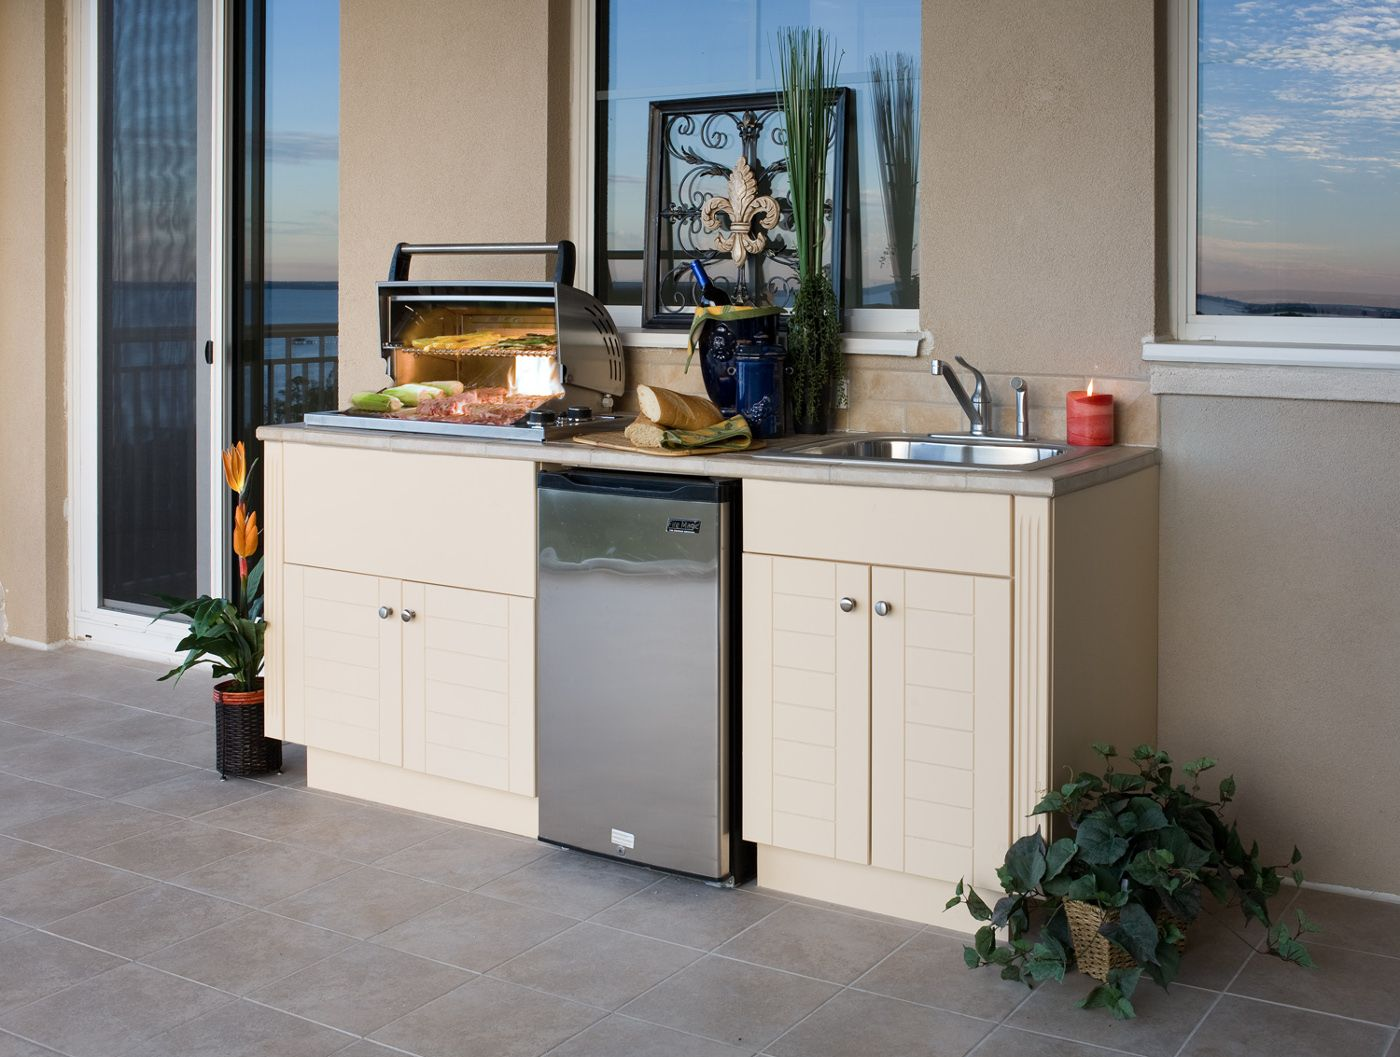 Select Outdoor Cabinets That Are Weather Proof Decorifusta In 2020 Outdoor Kitchen Cabinets Small Outdoor Kitchens Outdoor Kitchen Appliances